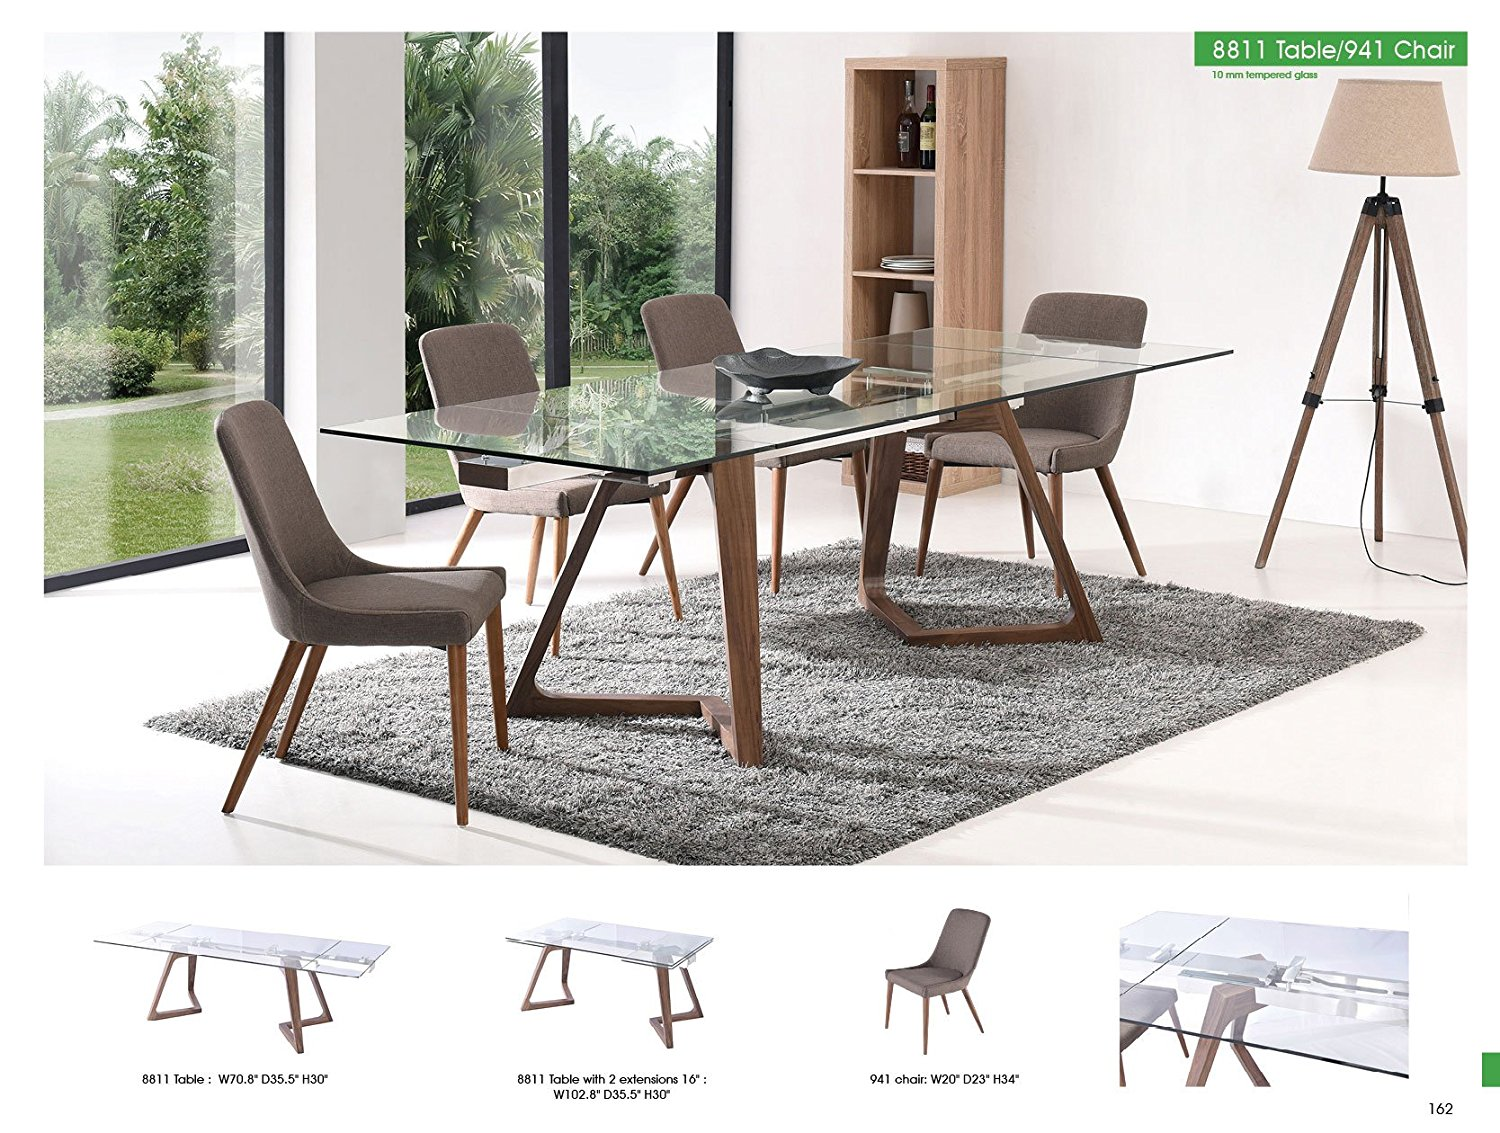 ESF 8811 Oak Retro Style Dining Table w/ Extension 941 Chairs Set 5Pcs Made in Italy